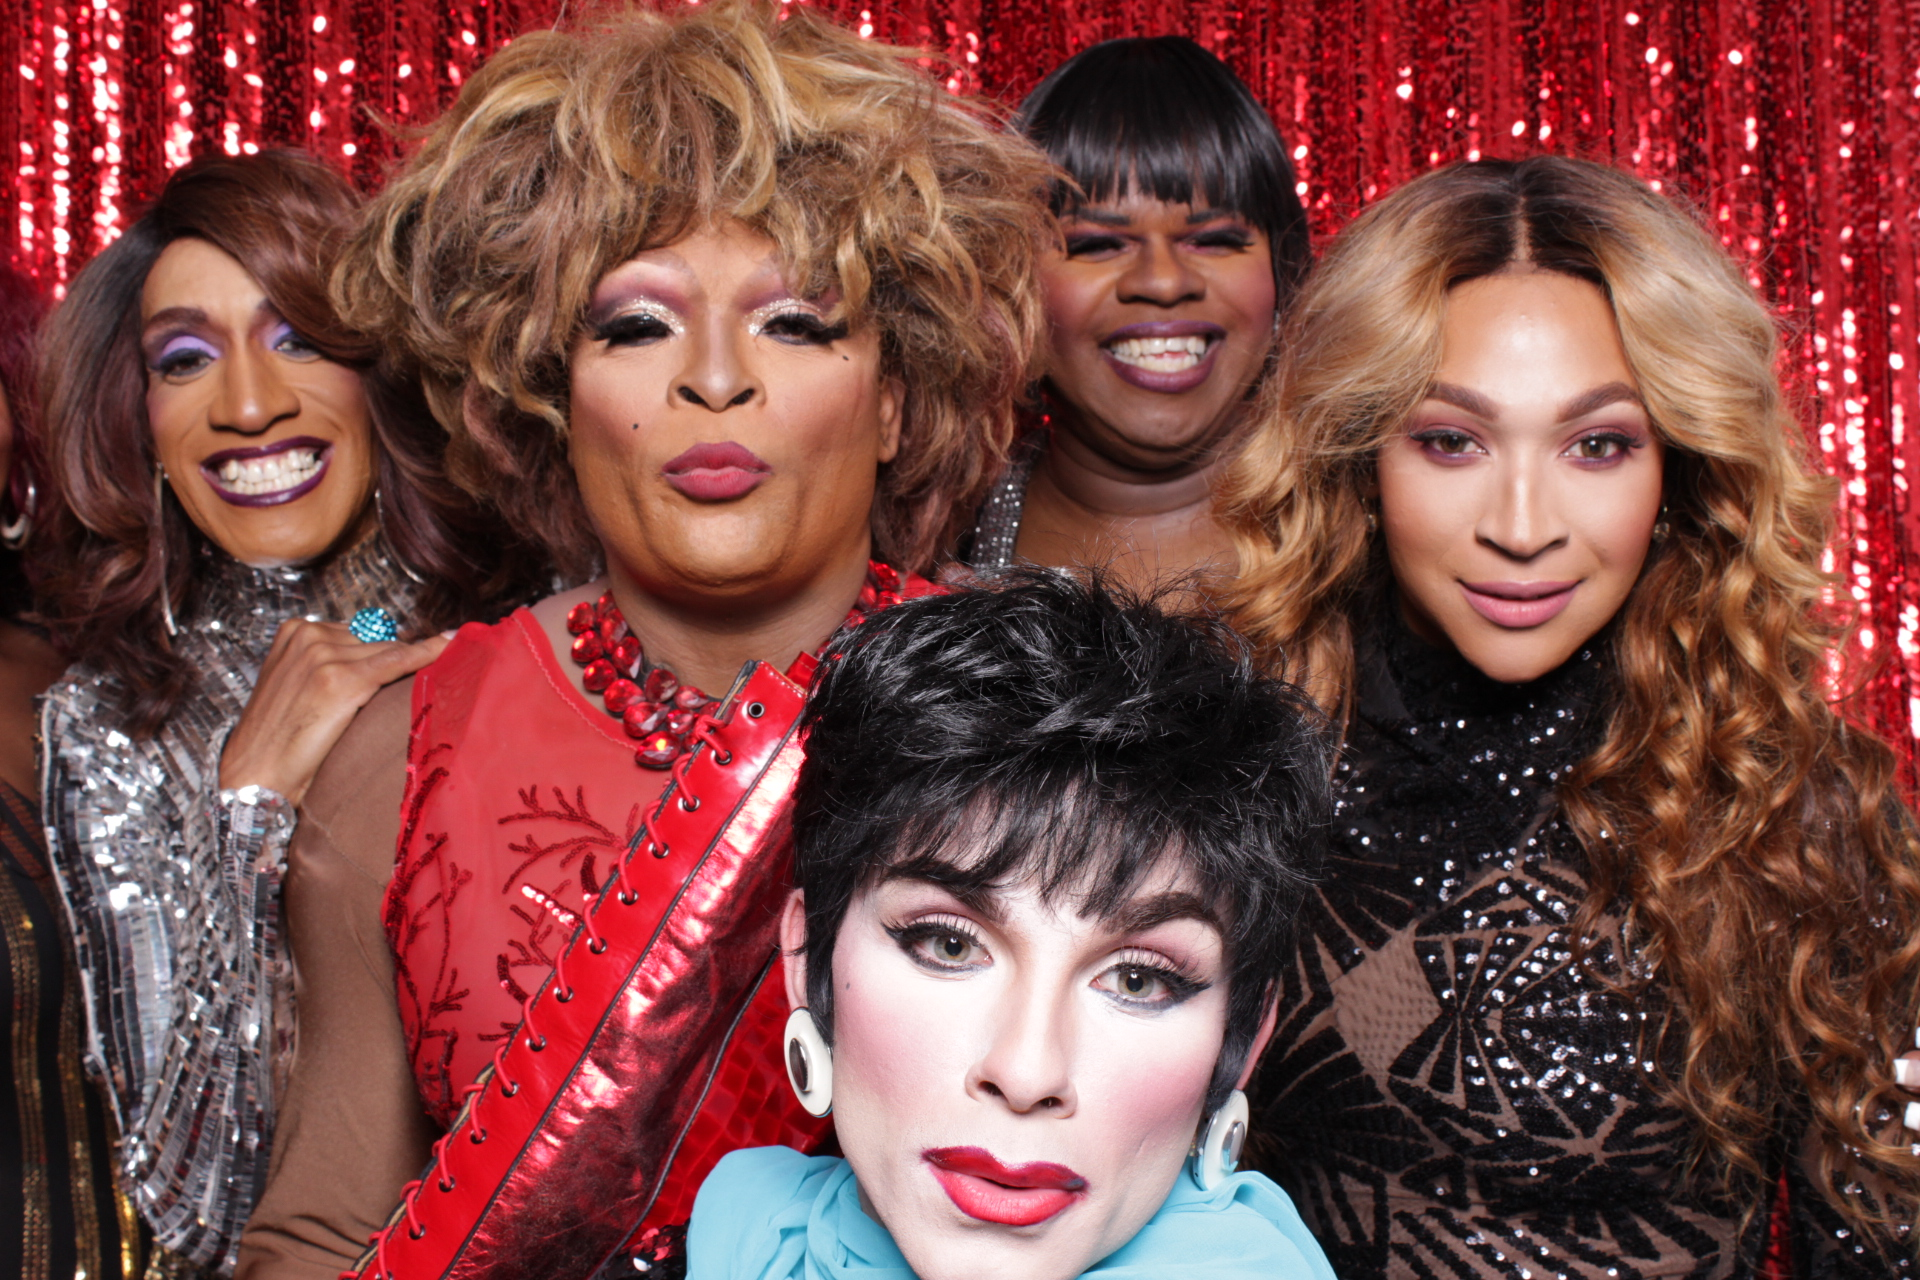 KENNEDY CENTER KINKY BOOTS CAST PARTY | HOT PINK PHOTO BOOTH